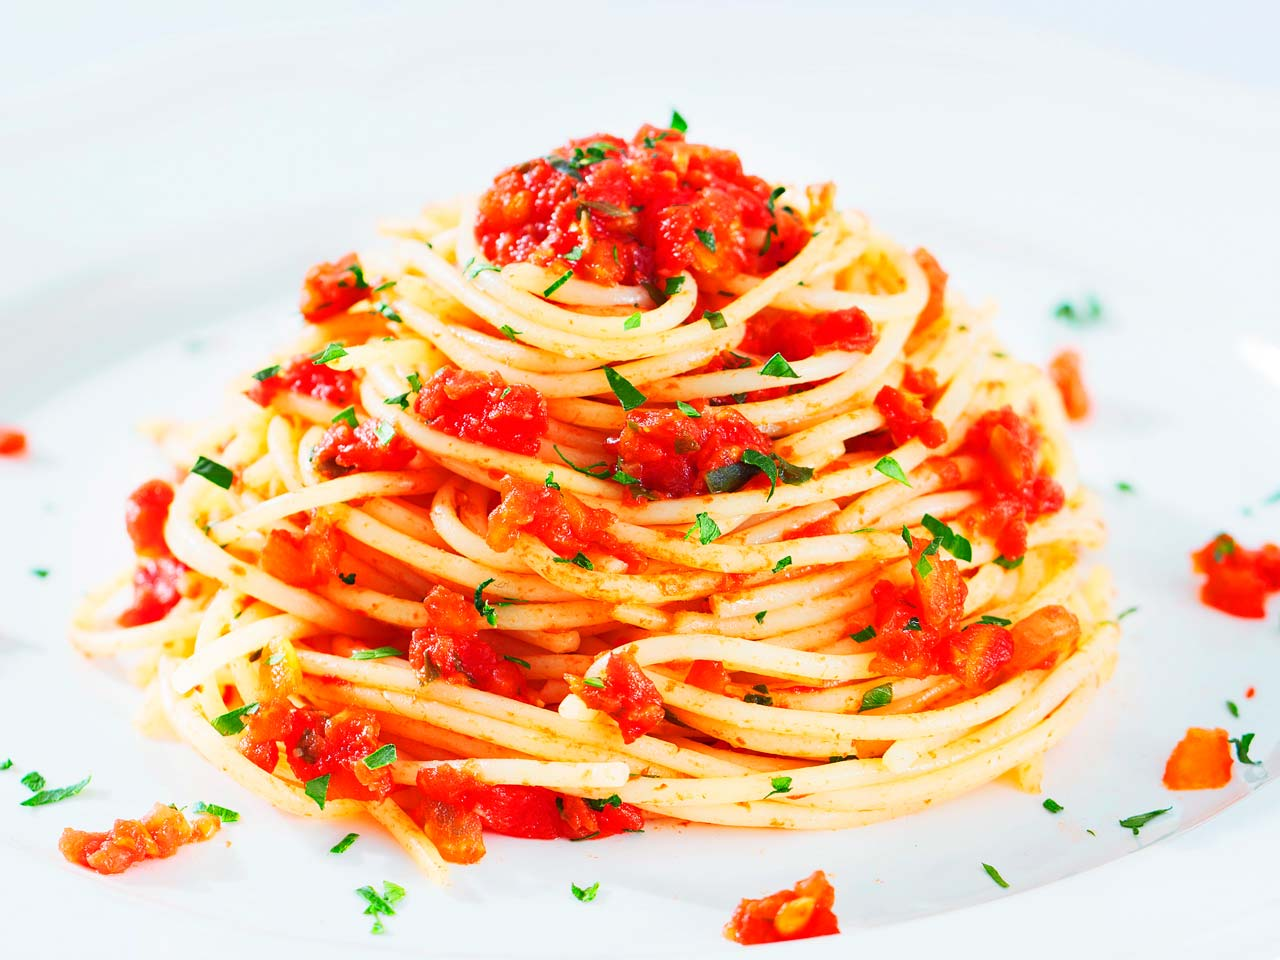 Spaghetti with tomatoes on a white plate